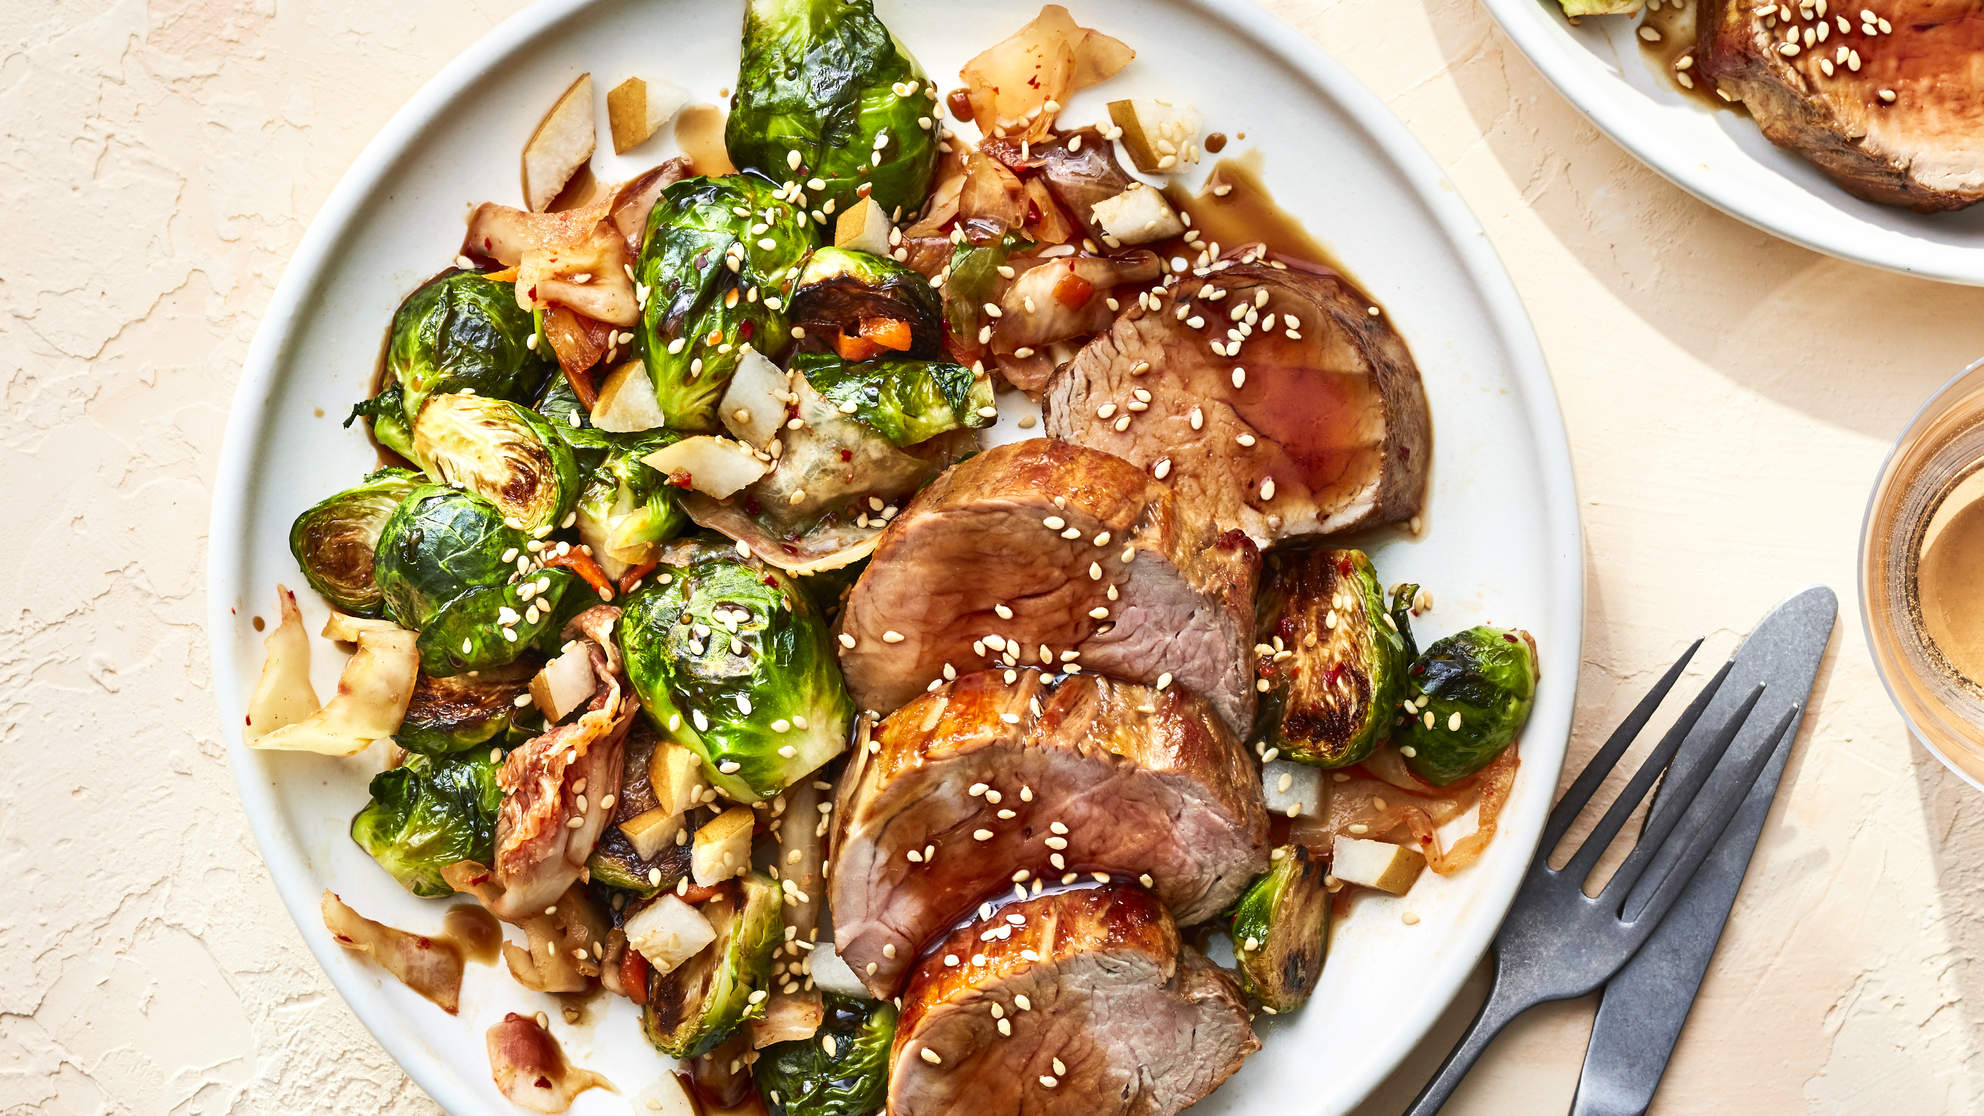 MARCH 2019 health magazine woman diet food recipe  SOY-GLAZED PORK TENDERLOIN WITH KIMCHI BRUSSELS SPROUTS